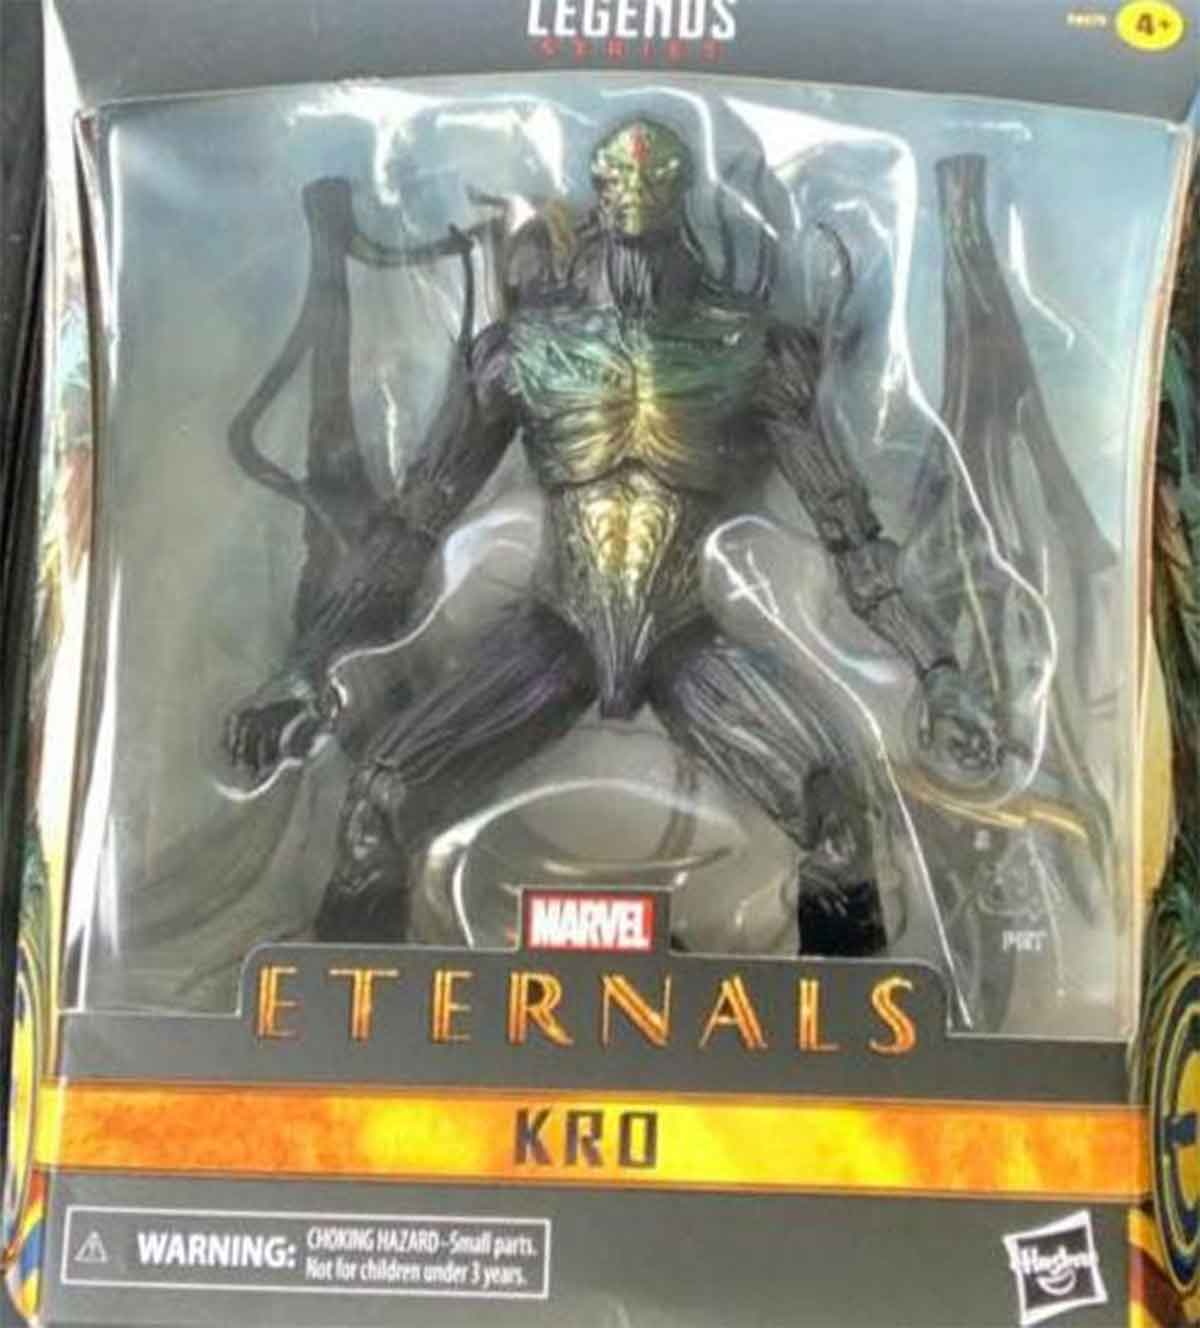 They filter the great villain of the film of The Eternals of Marvel